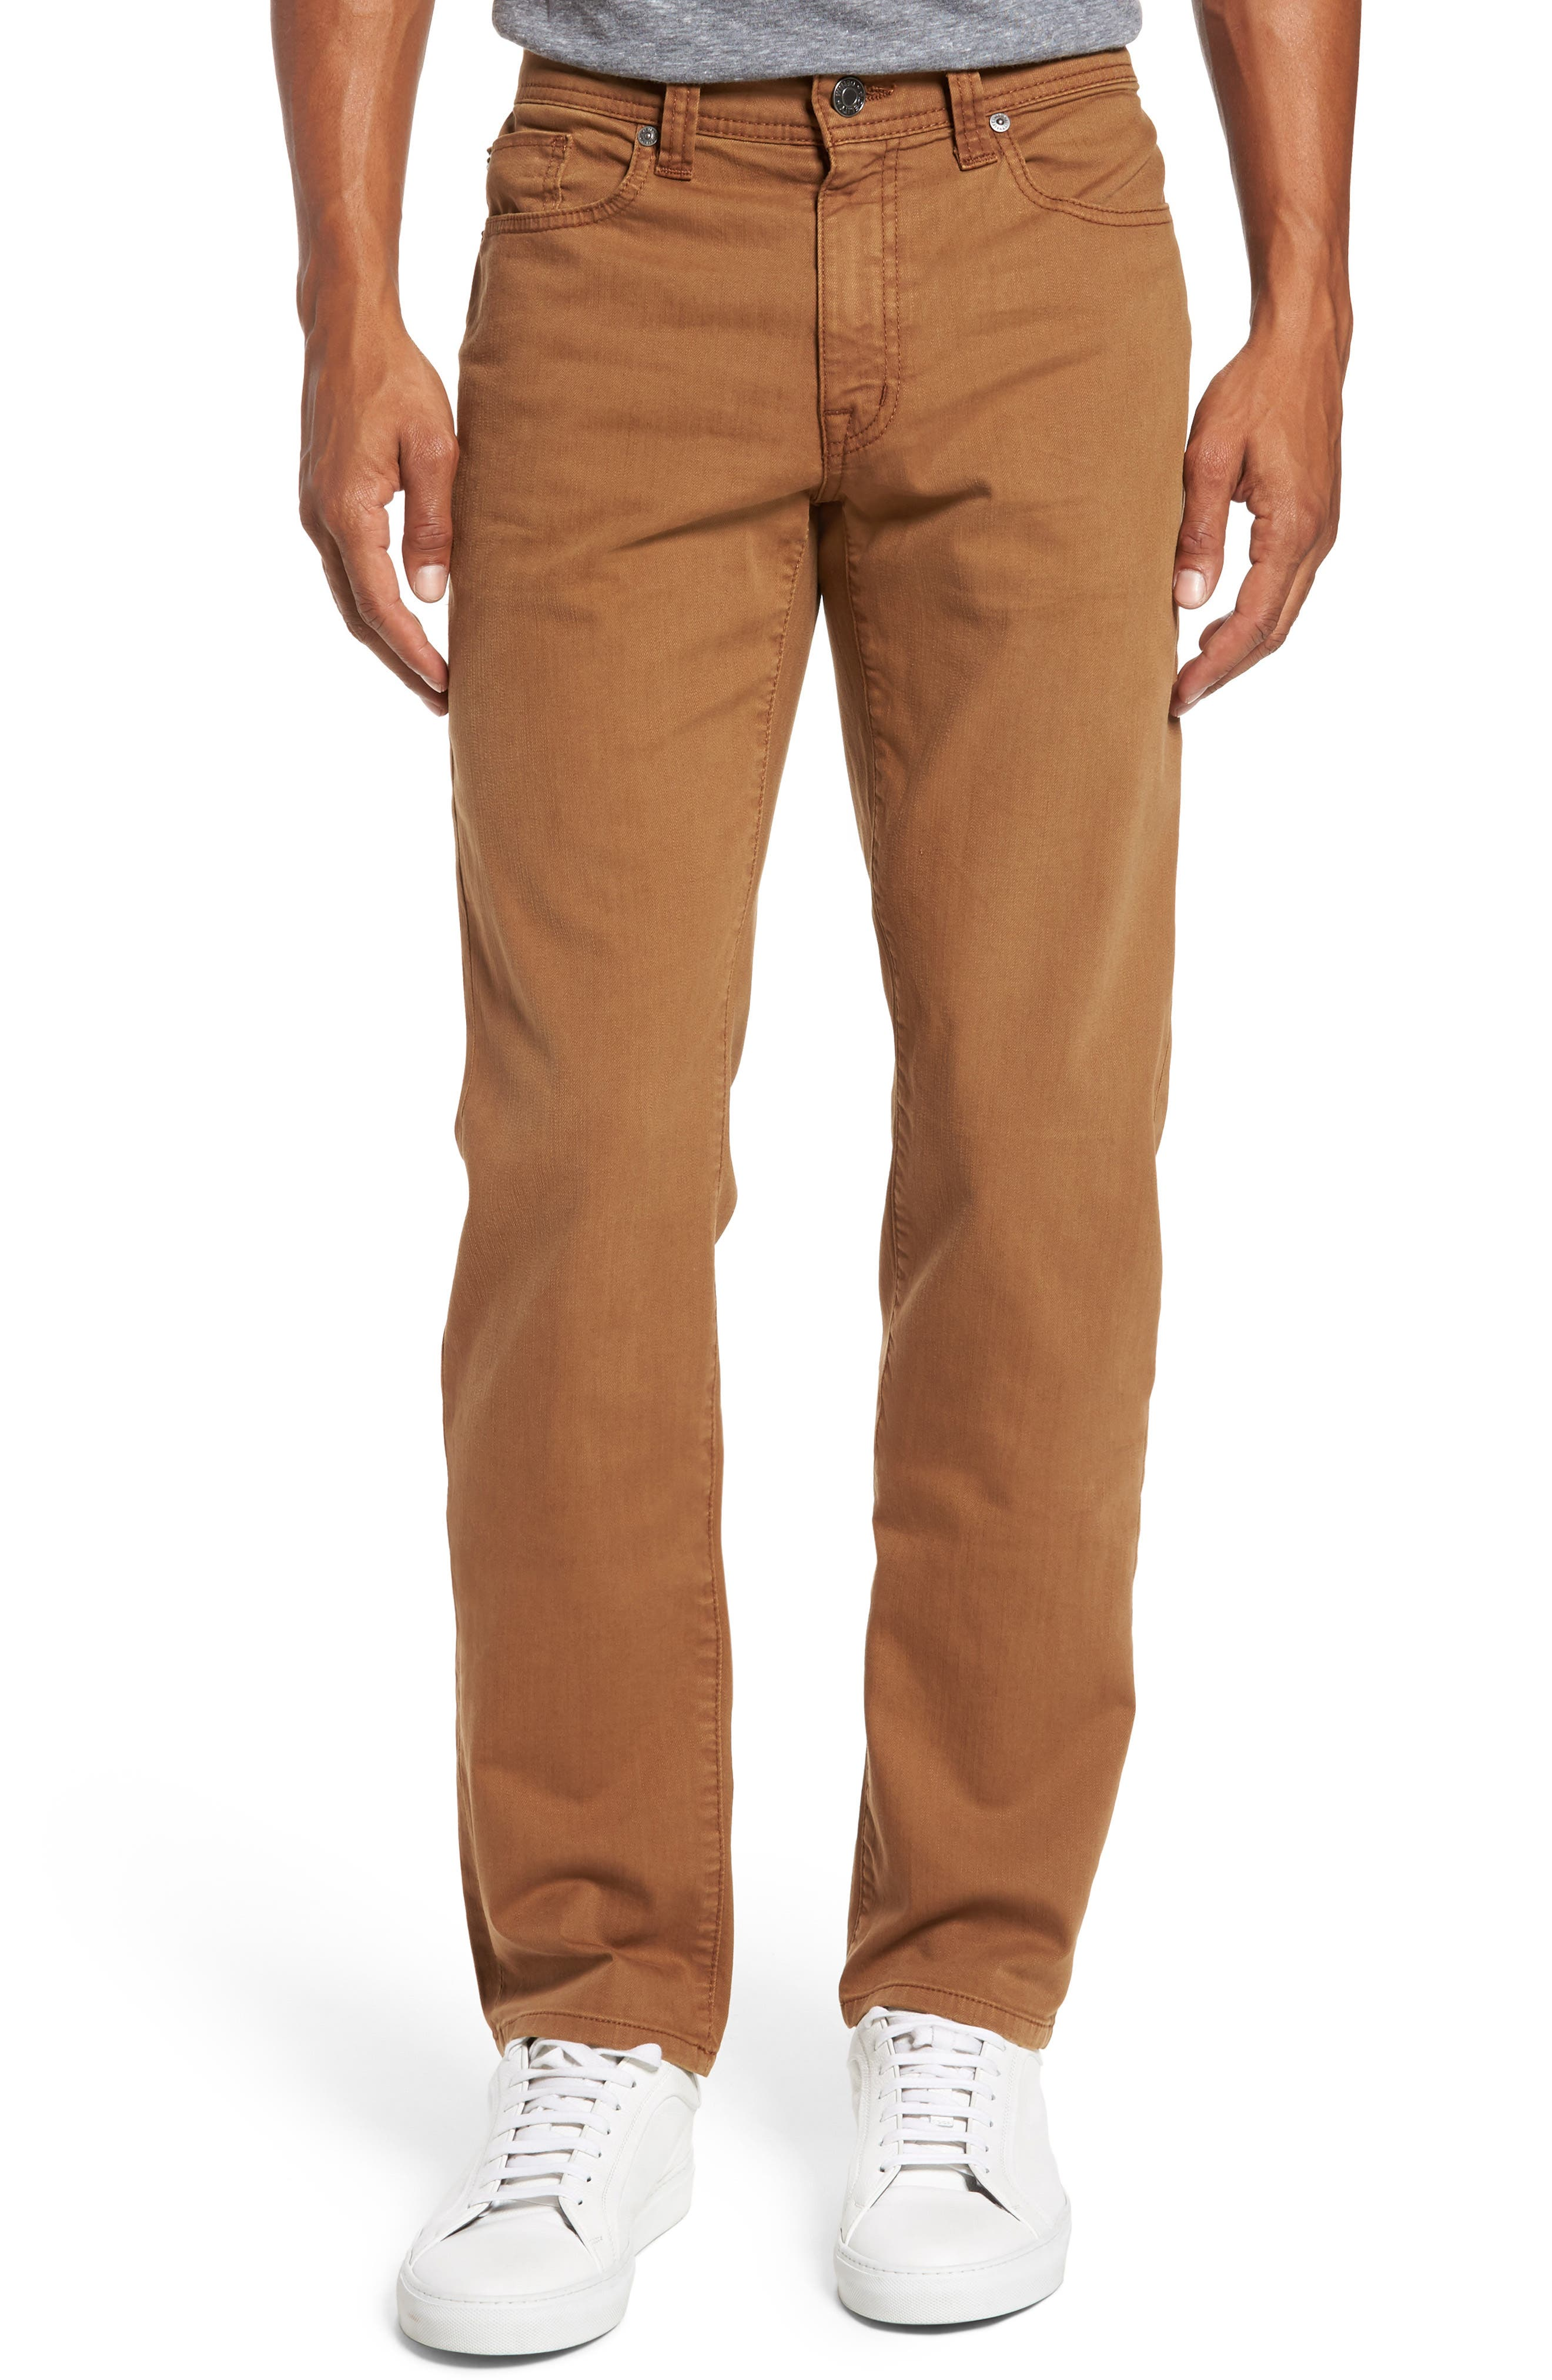 Jimmy Slim Straight Fit Jeans,                         Main,                         color, 300